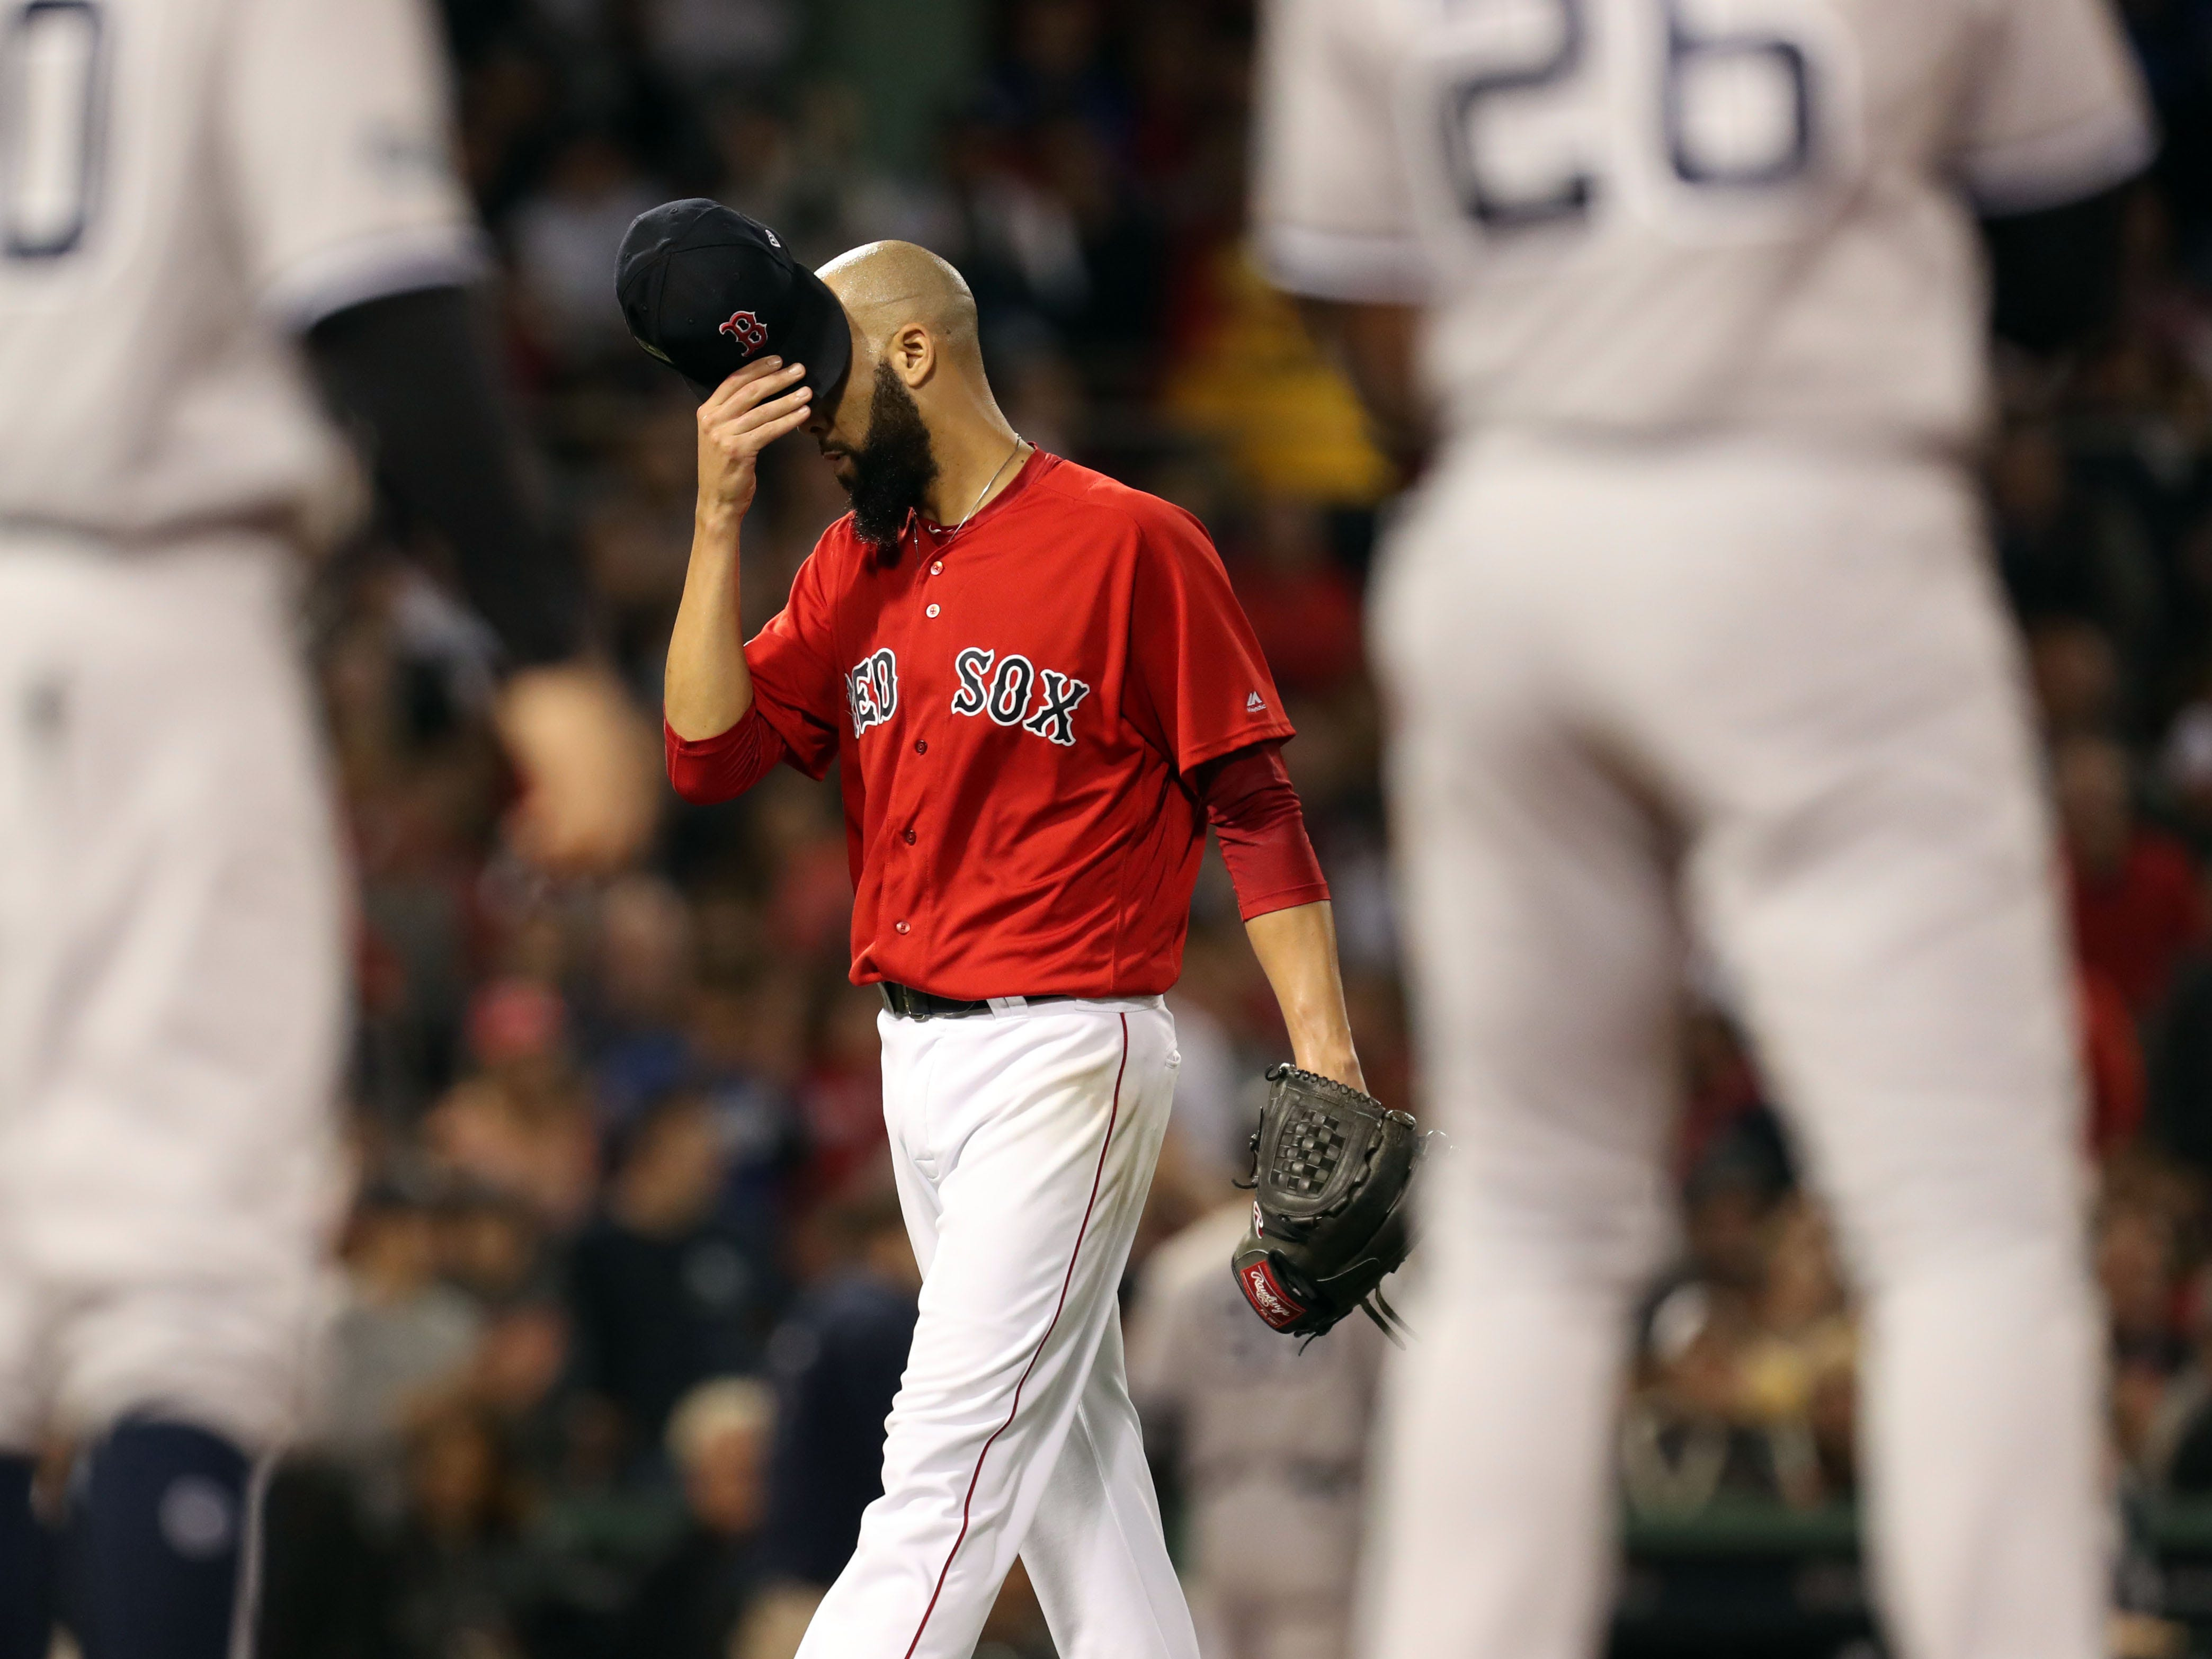 ALDS Game 2: Red Sox starting pitcher David Price is pulled from the game in the second inning.